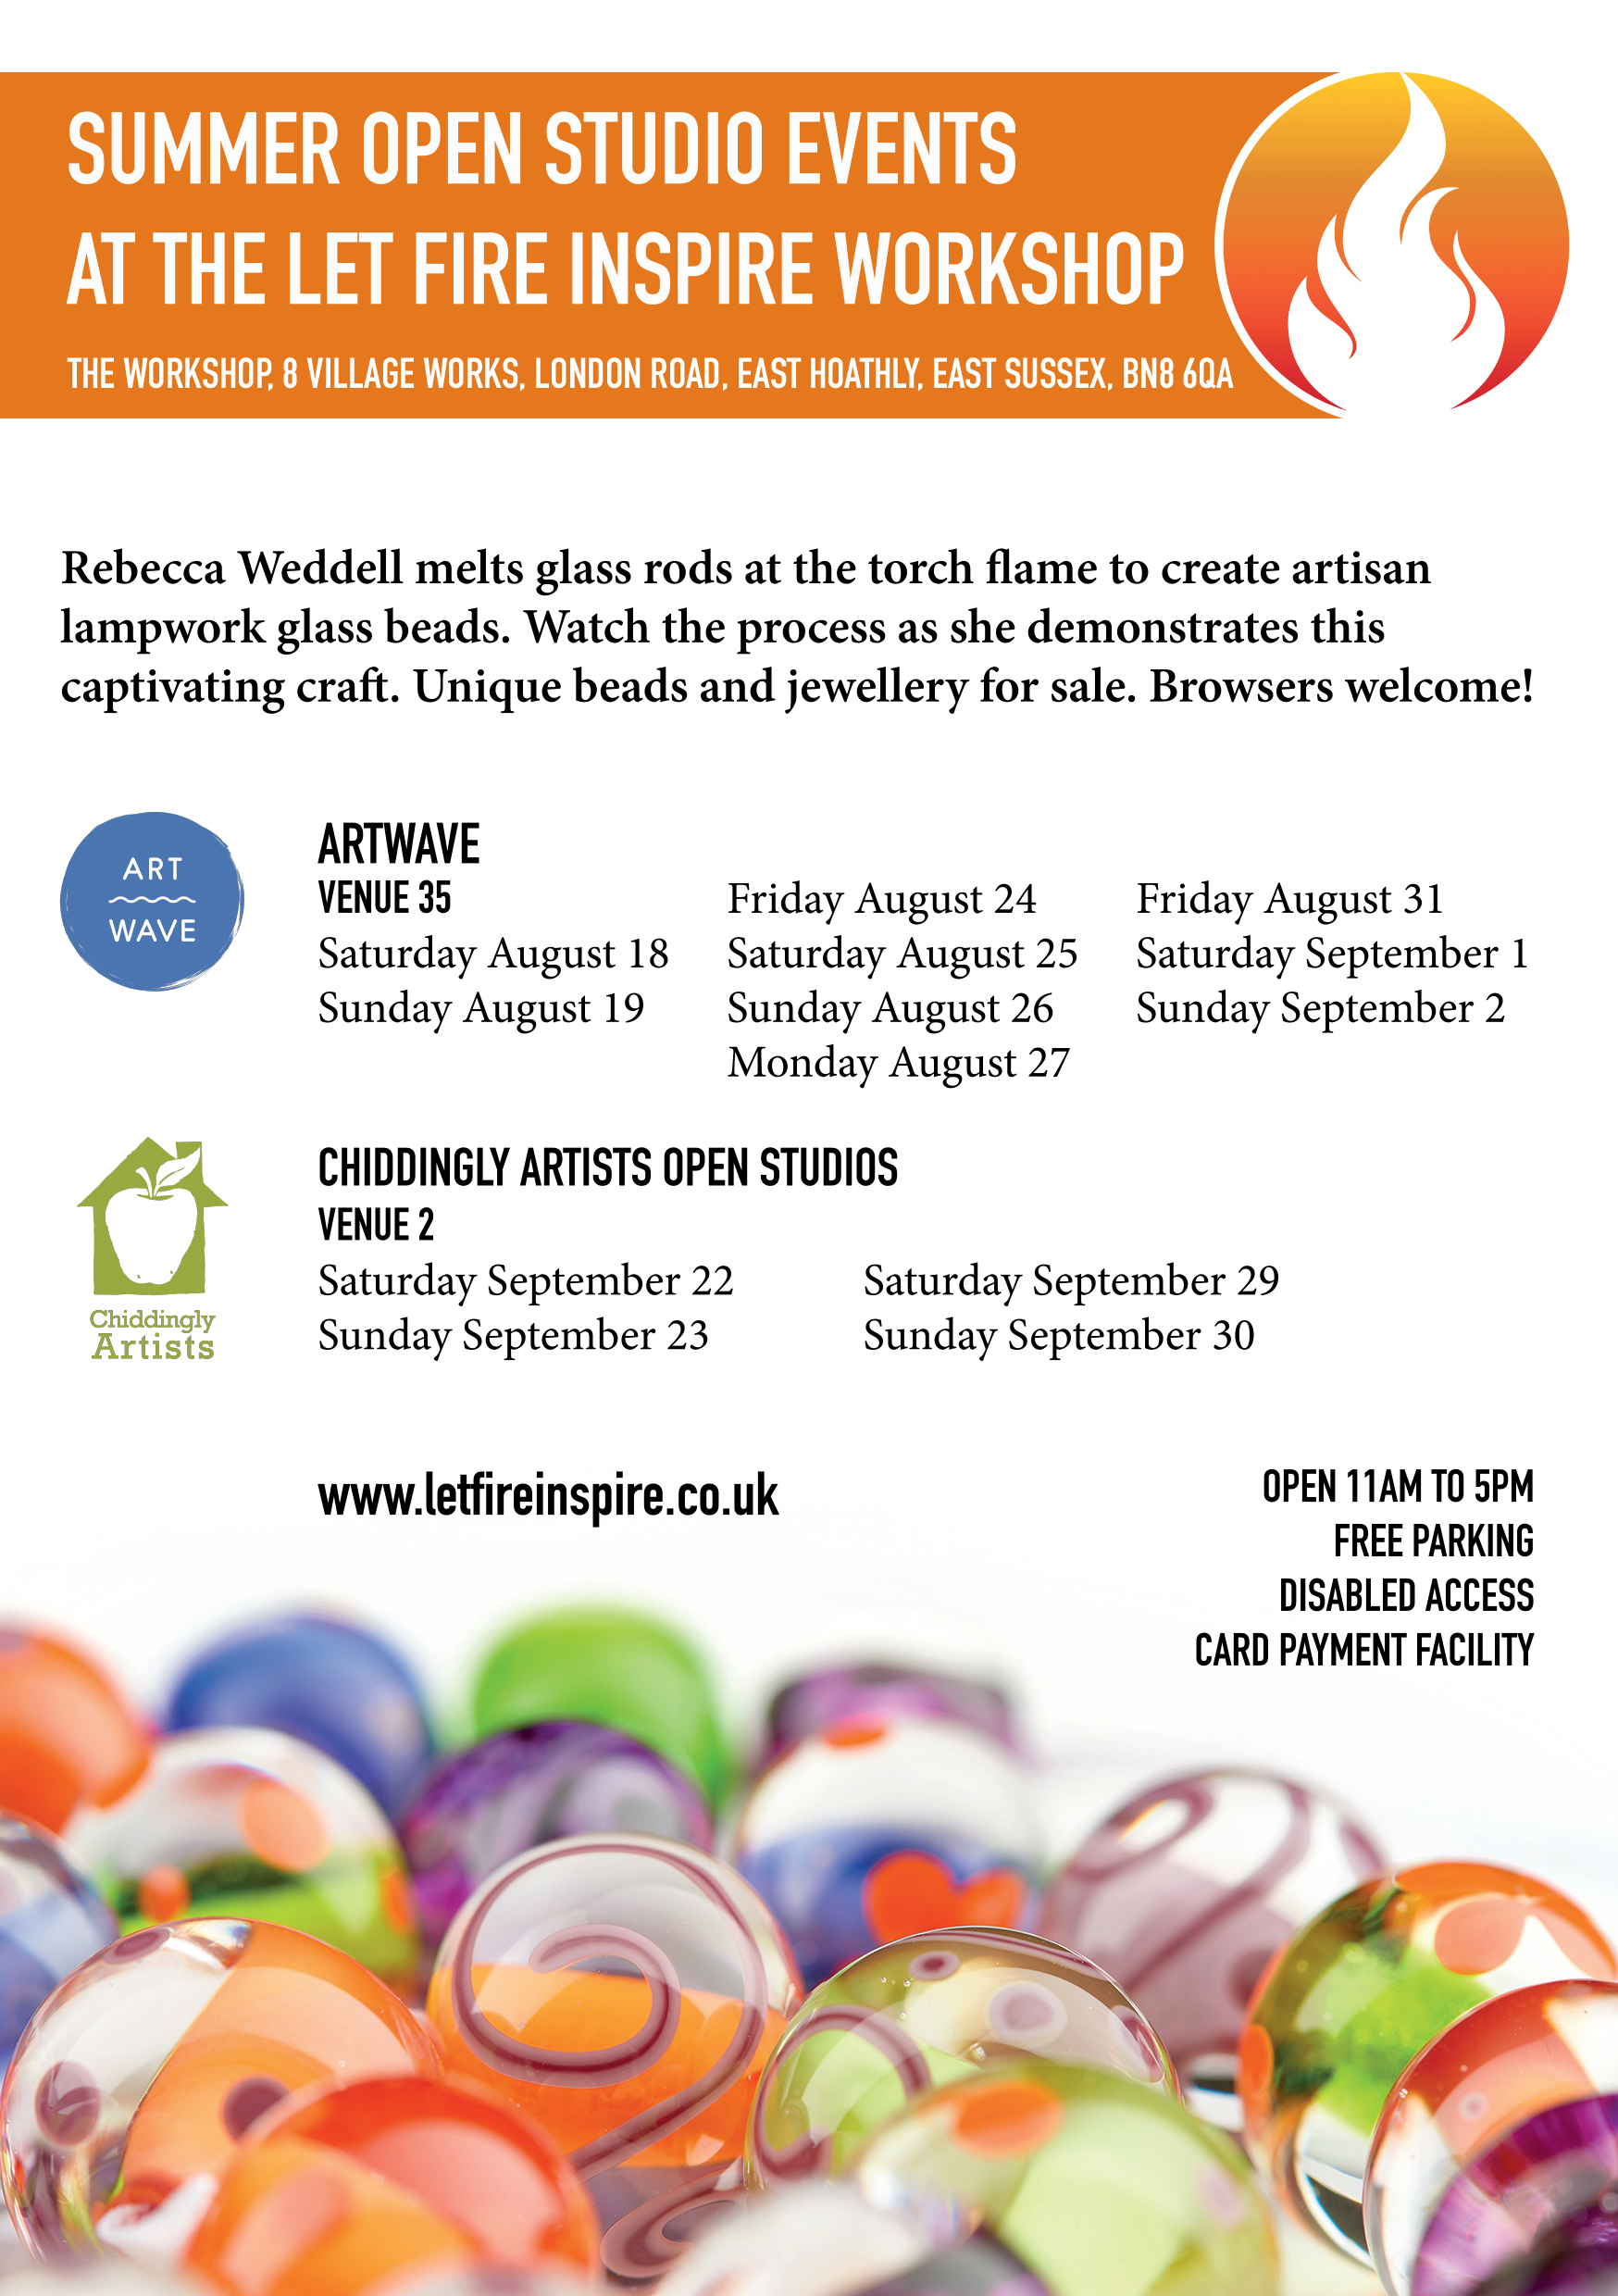 Visit the workshop in August and September as part of Artwave and CAOS!